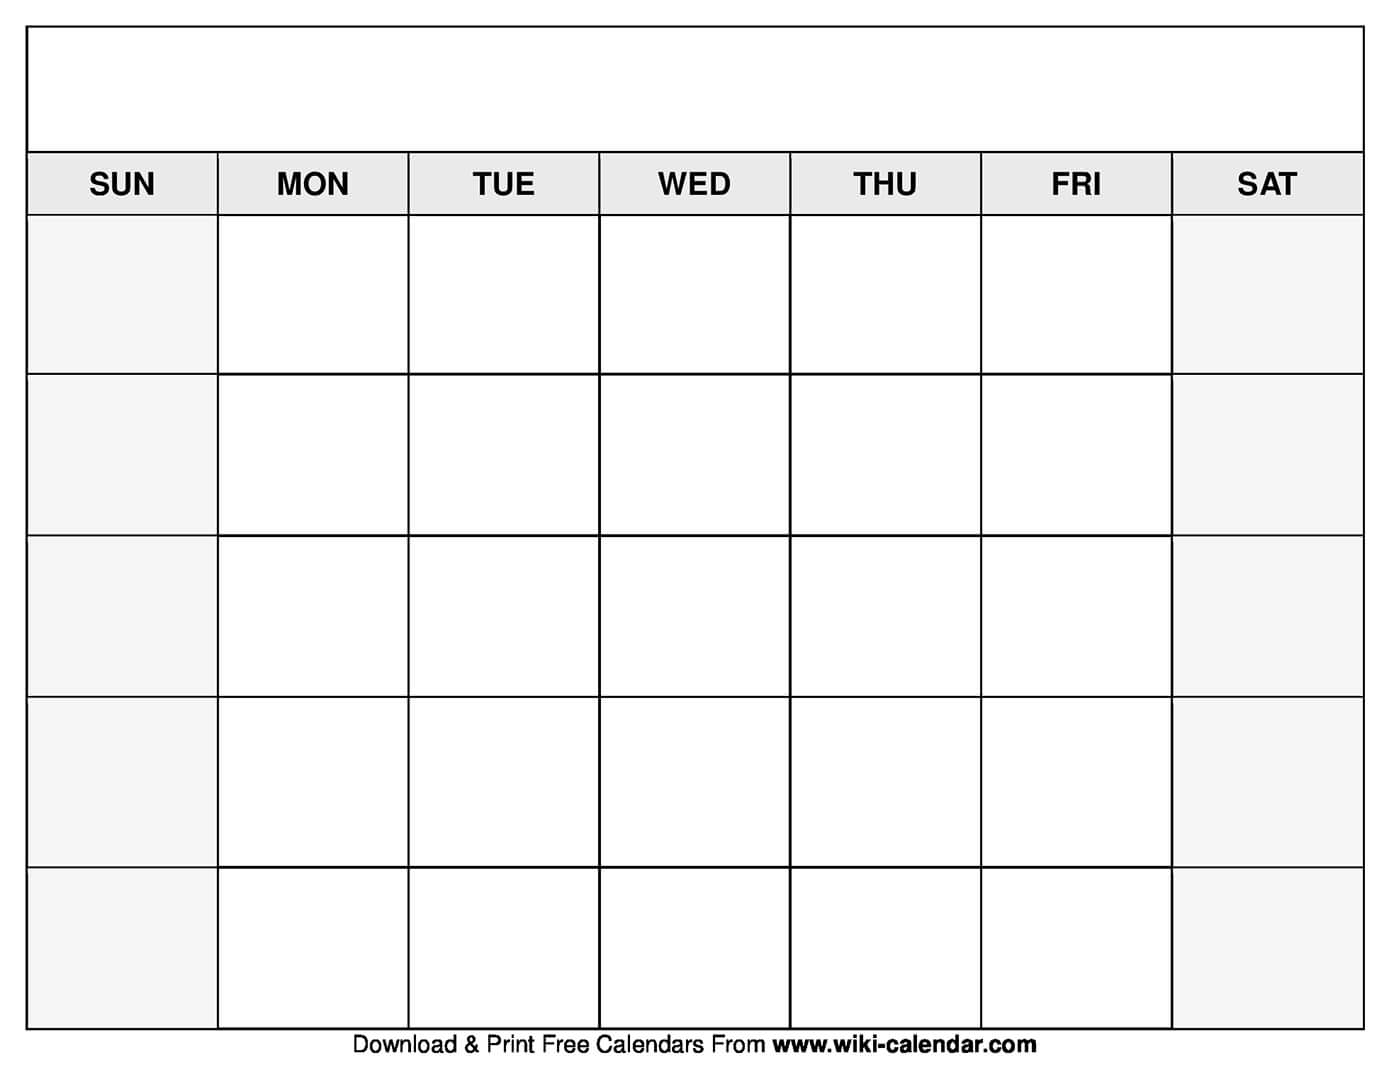 Calendar Templates To Print - Zohre.horizonconsulting.co With Regard To Blank Calender Template